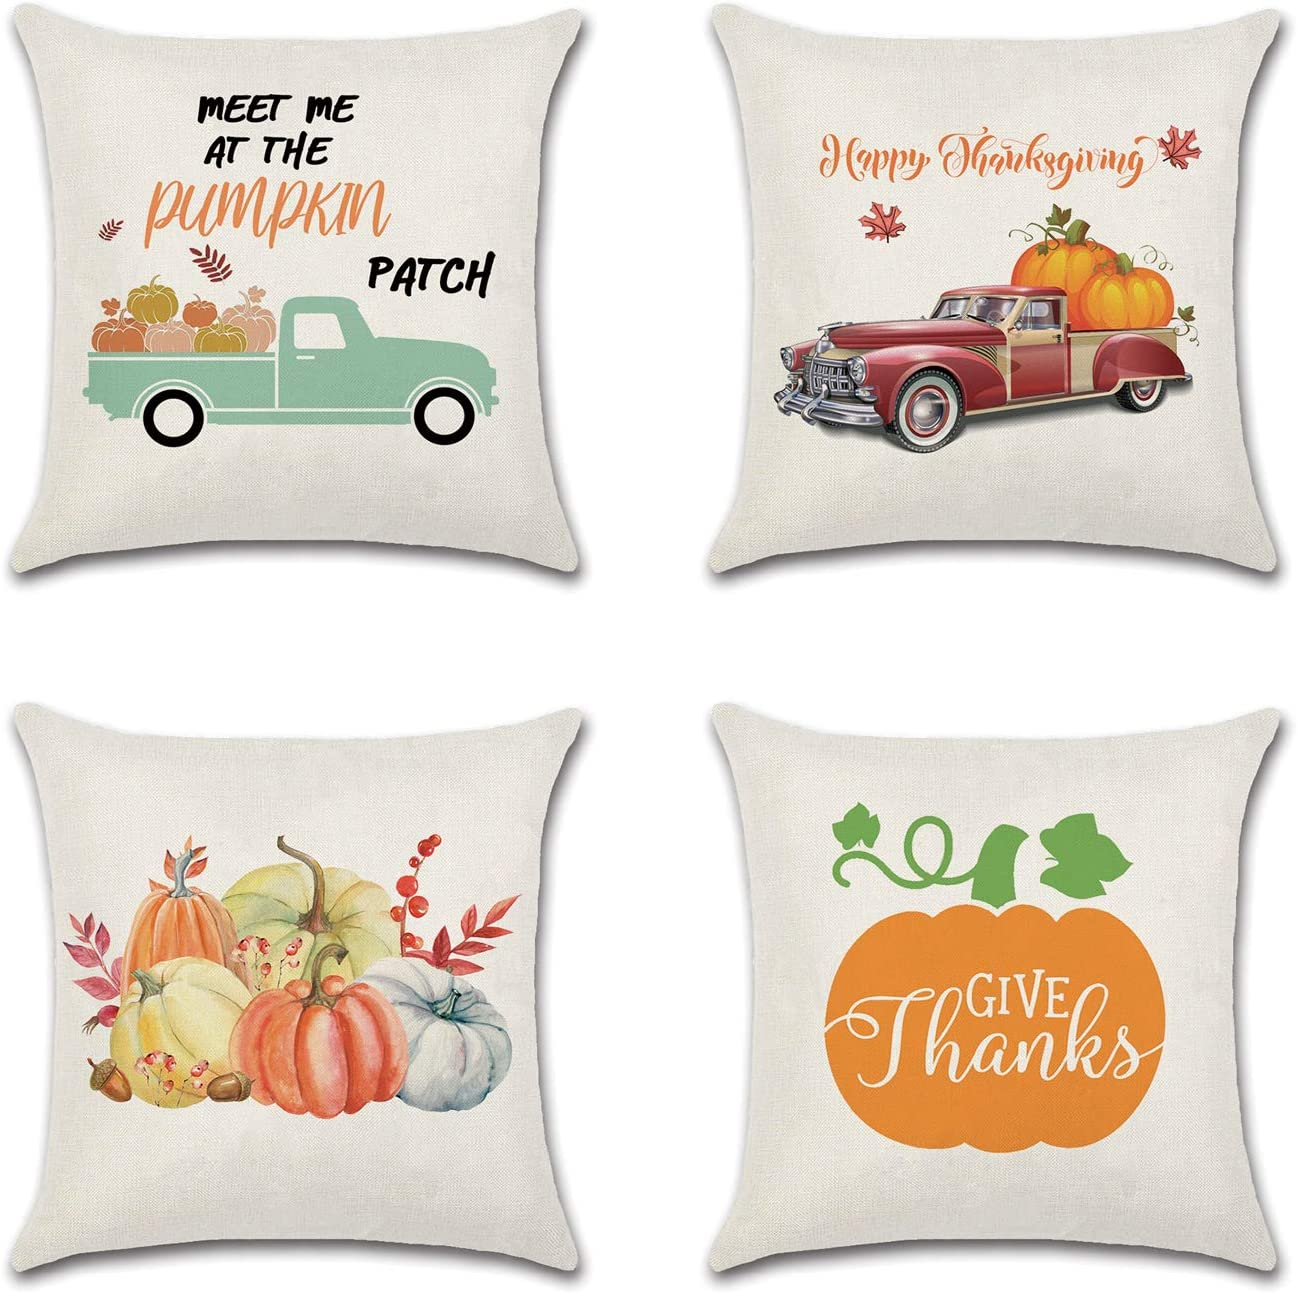 Korlon Set of 4 Fall Pillow Covers 18x18, Thanksgiving Pillow Covers, Holiday Decorative Pillow Covers: Pumpkin, Happy Fall, Harvest Truck, Pillow Covers for Thanksgiving Decor